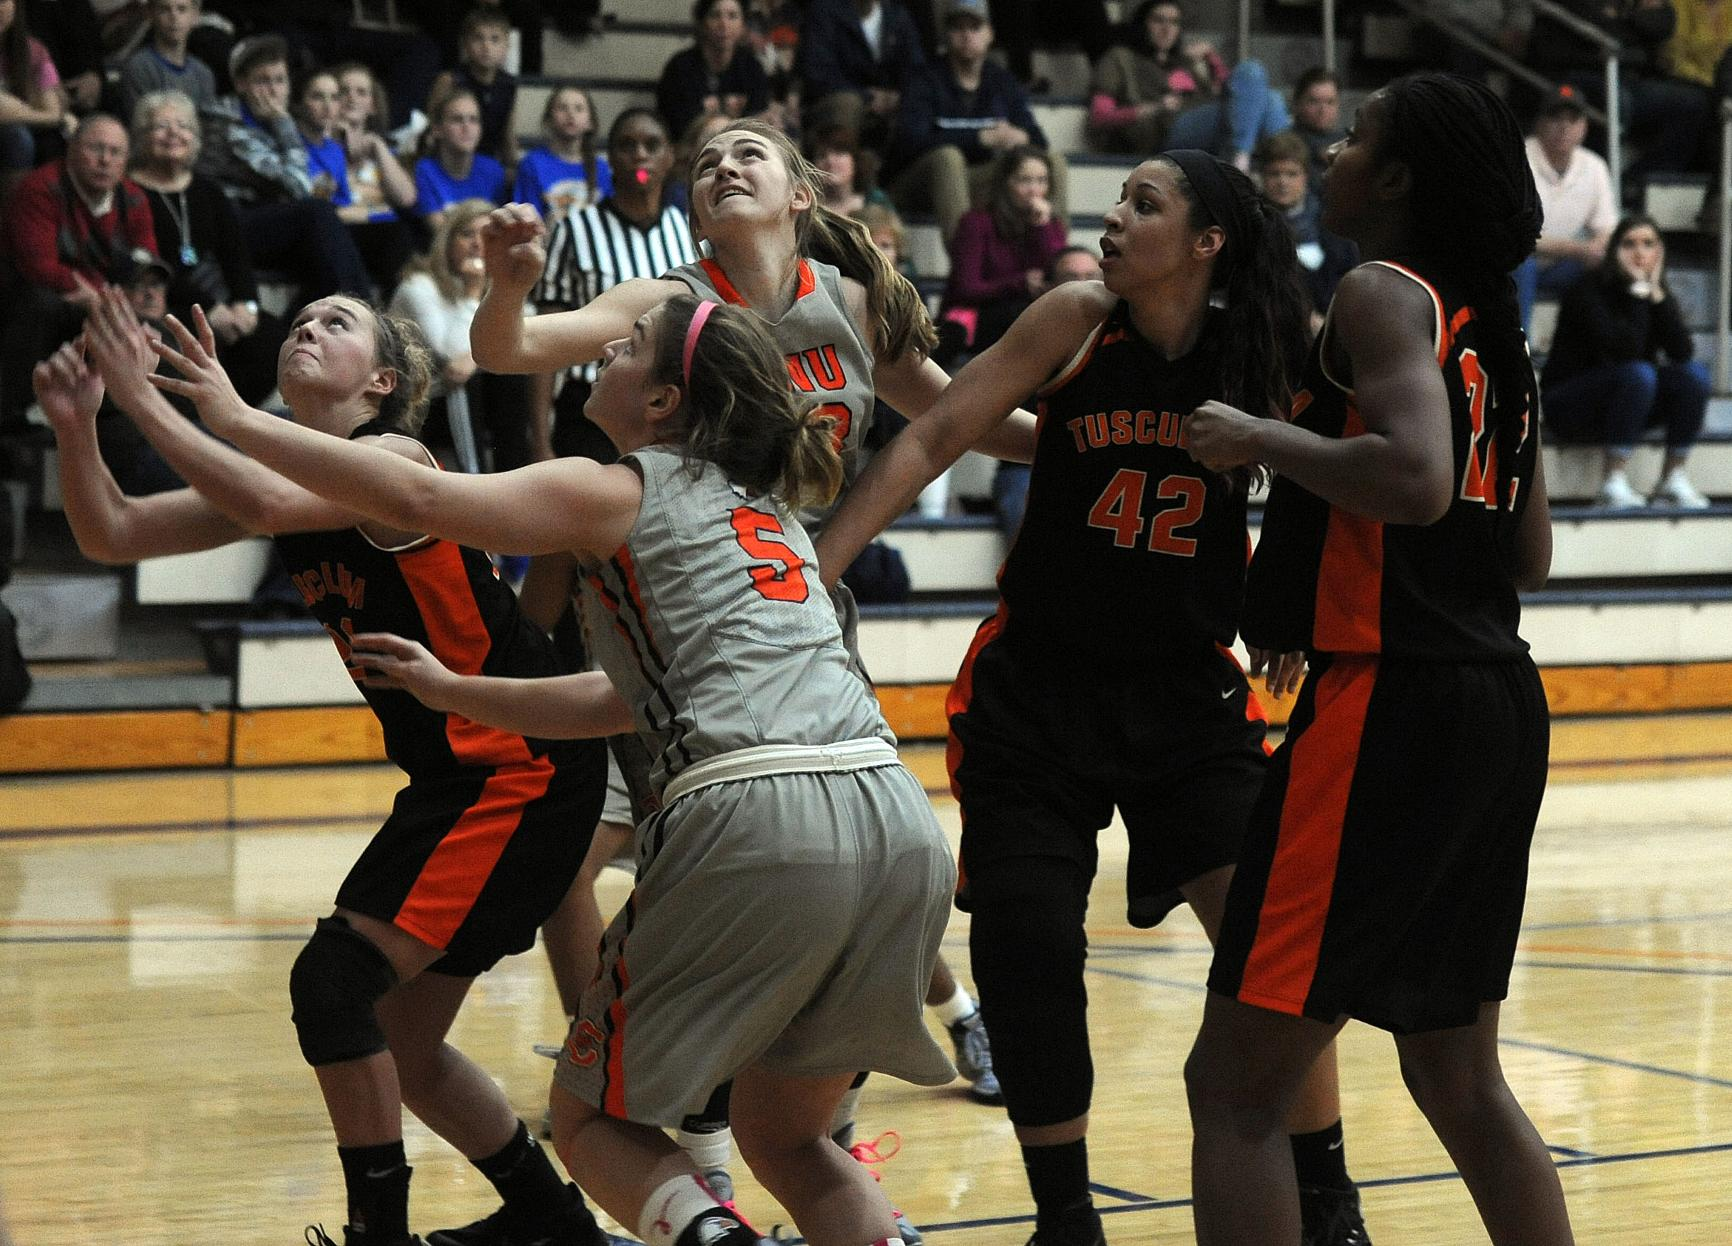 Pioneers puncture C-N's recent dominance in 64-55 win